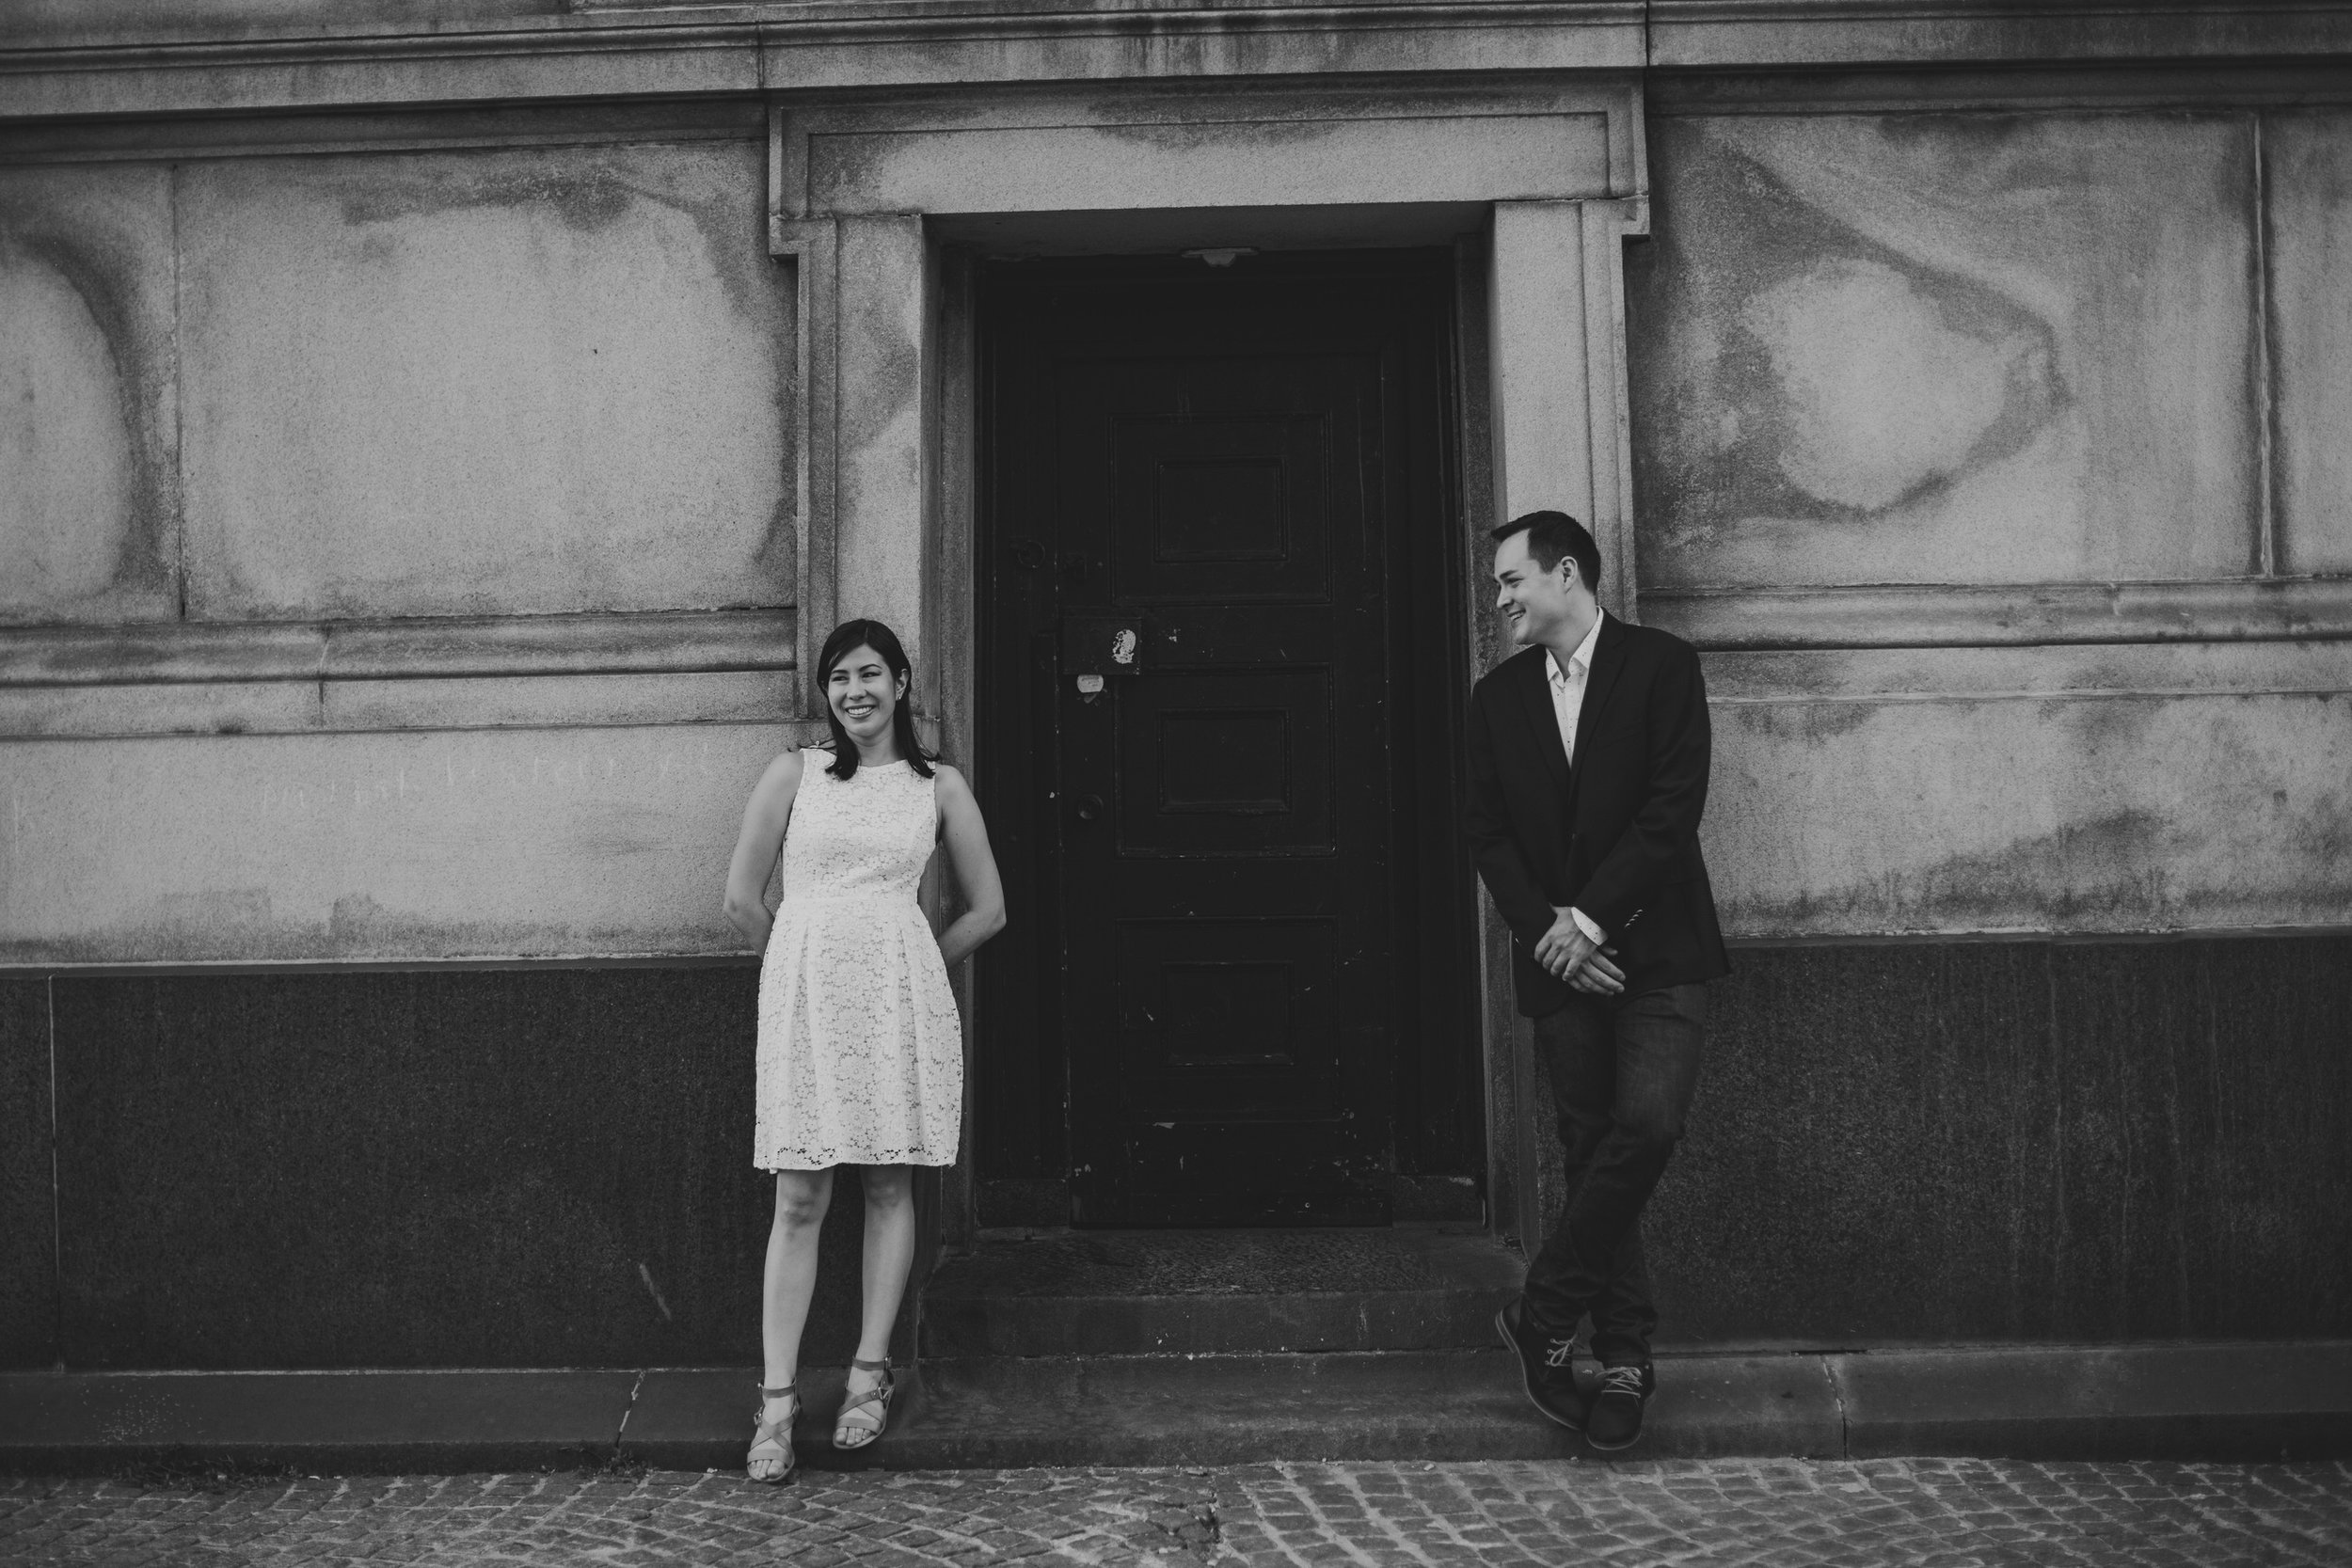 tiny_house_photo_black_and_white_engagement_session_moments_documentary.jpg